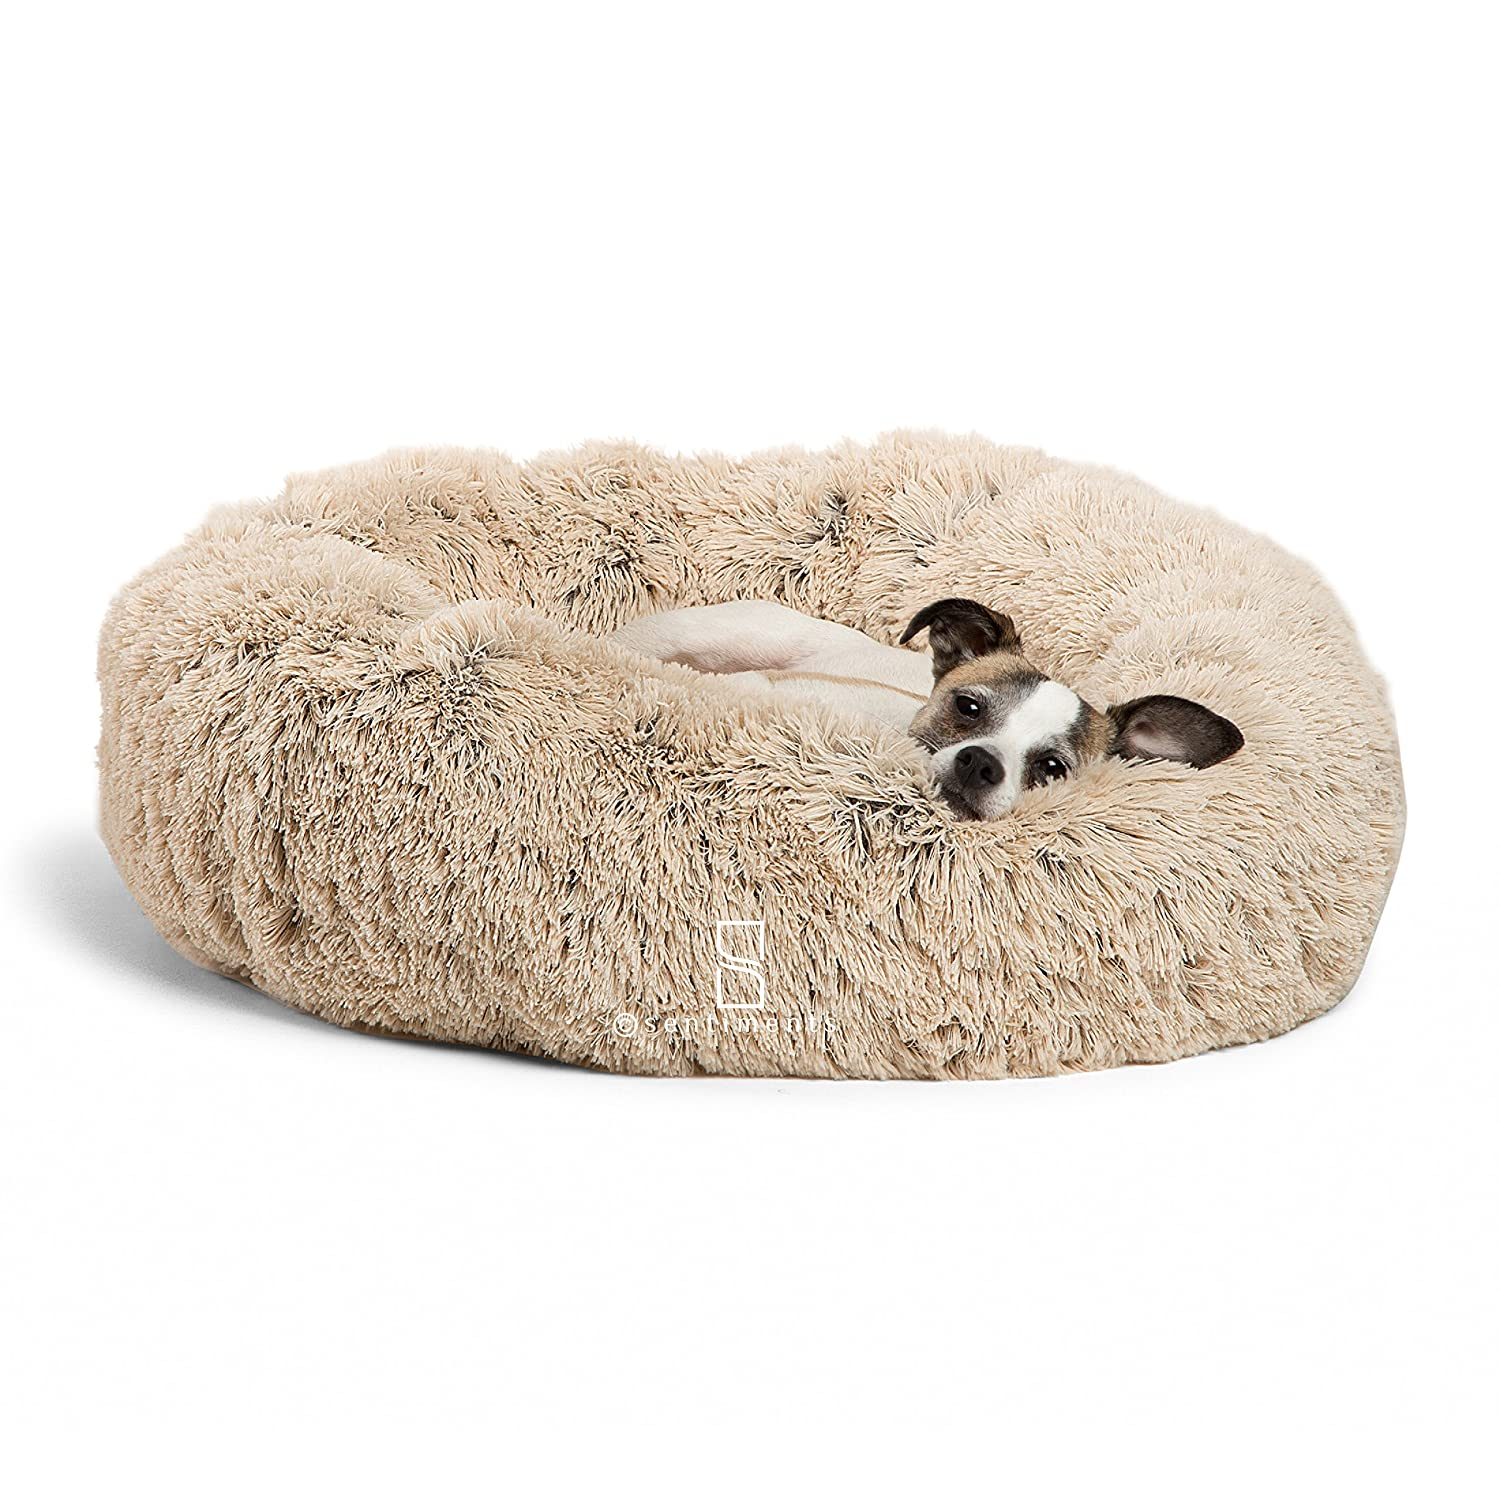 Best Friends by Sheri DNT-SHG-TAU-2323-VP Luxury Shag Fuax Fur Donut Cuddler (Multiple Sizes) – Cat and Dog B23 x23 , Taupe